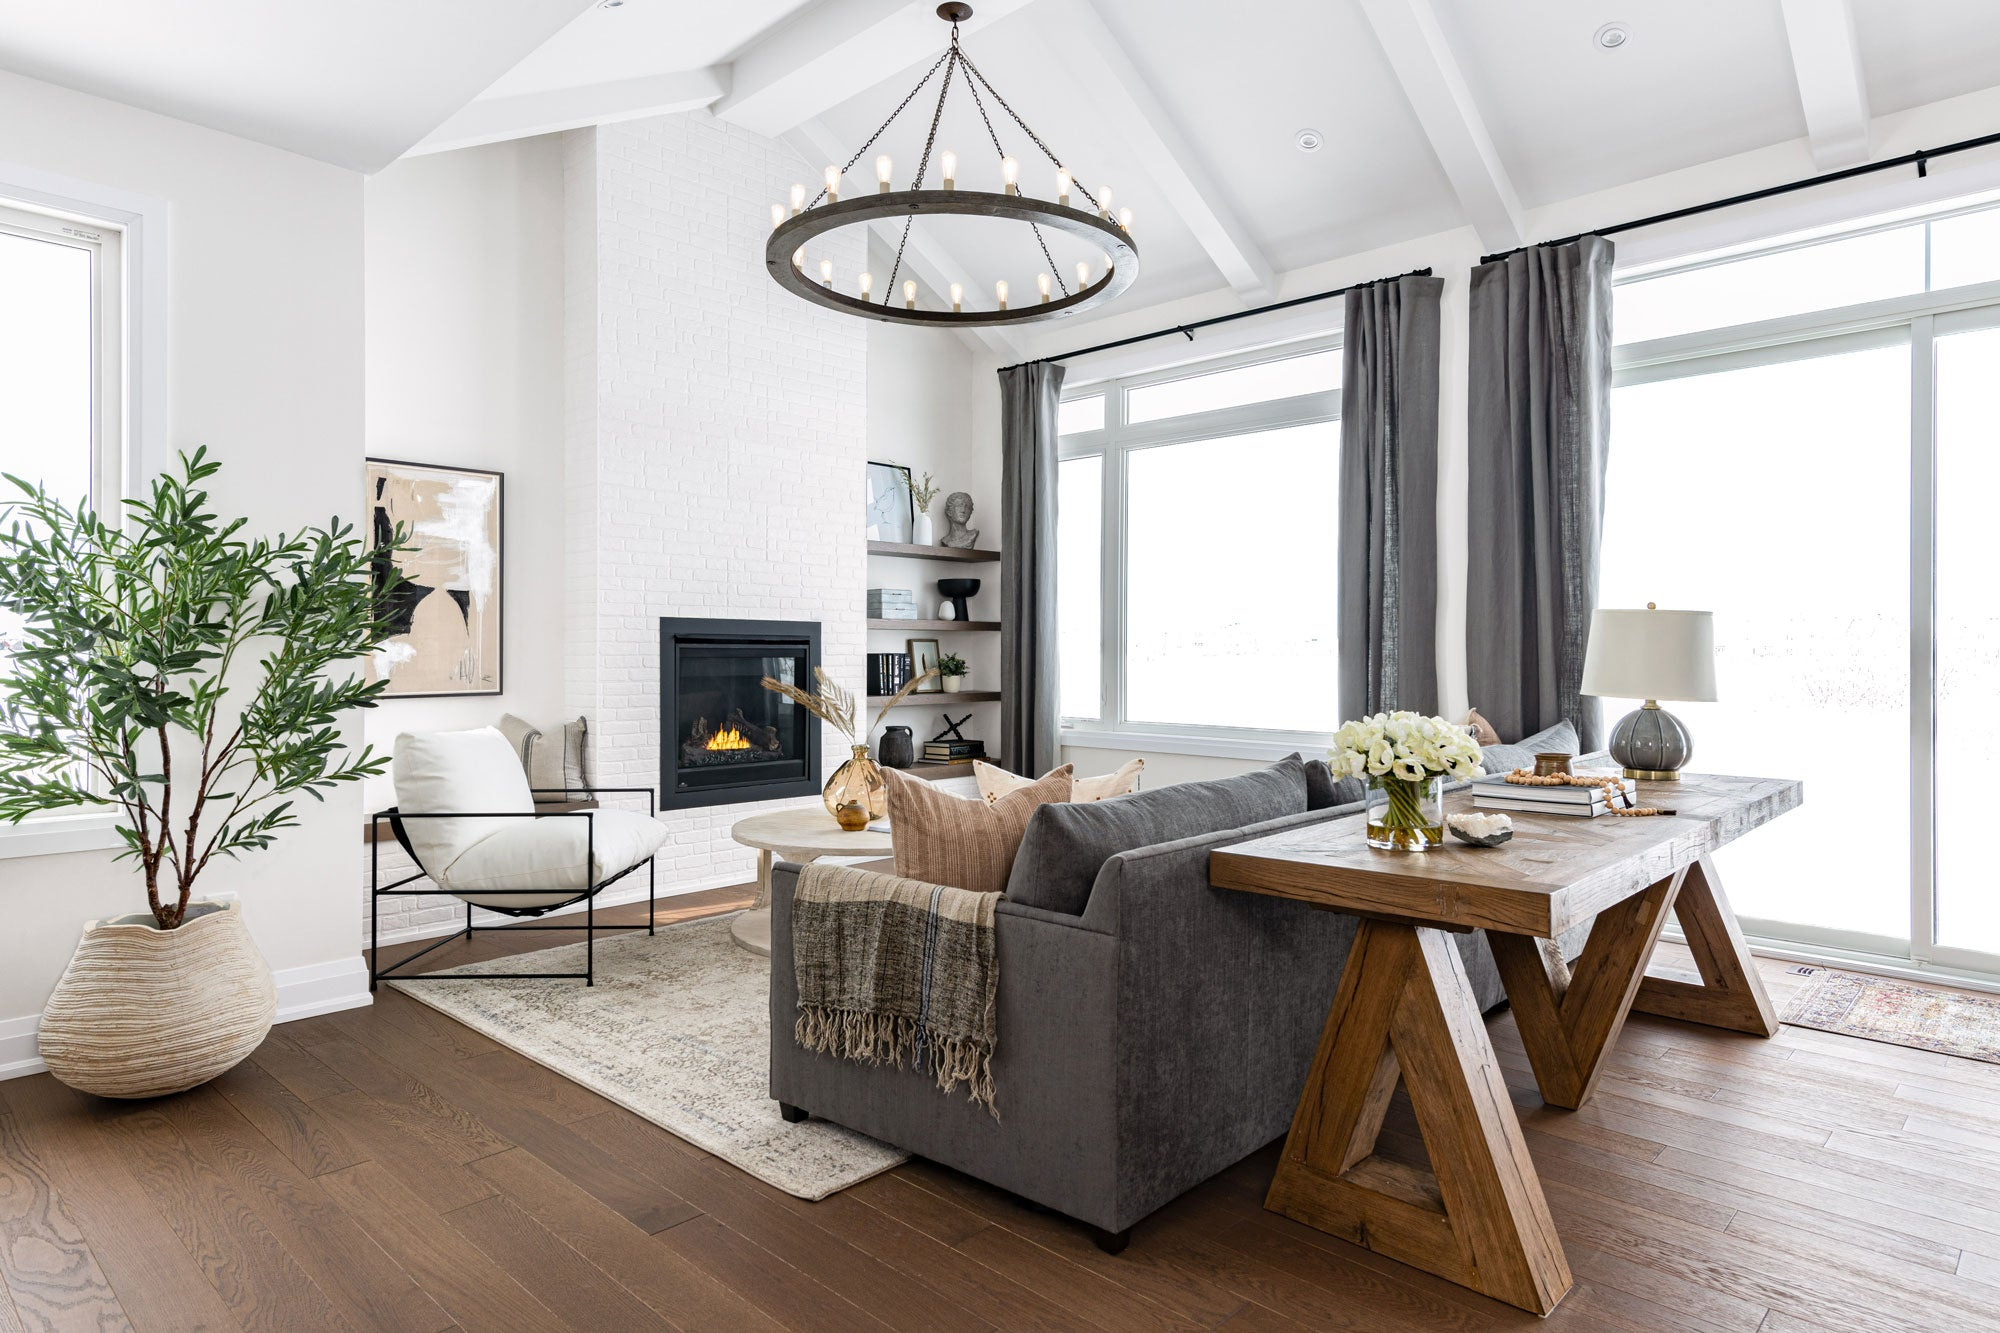 Furnished living Room with white brick fireplace